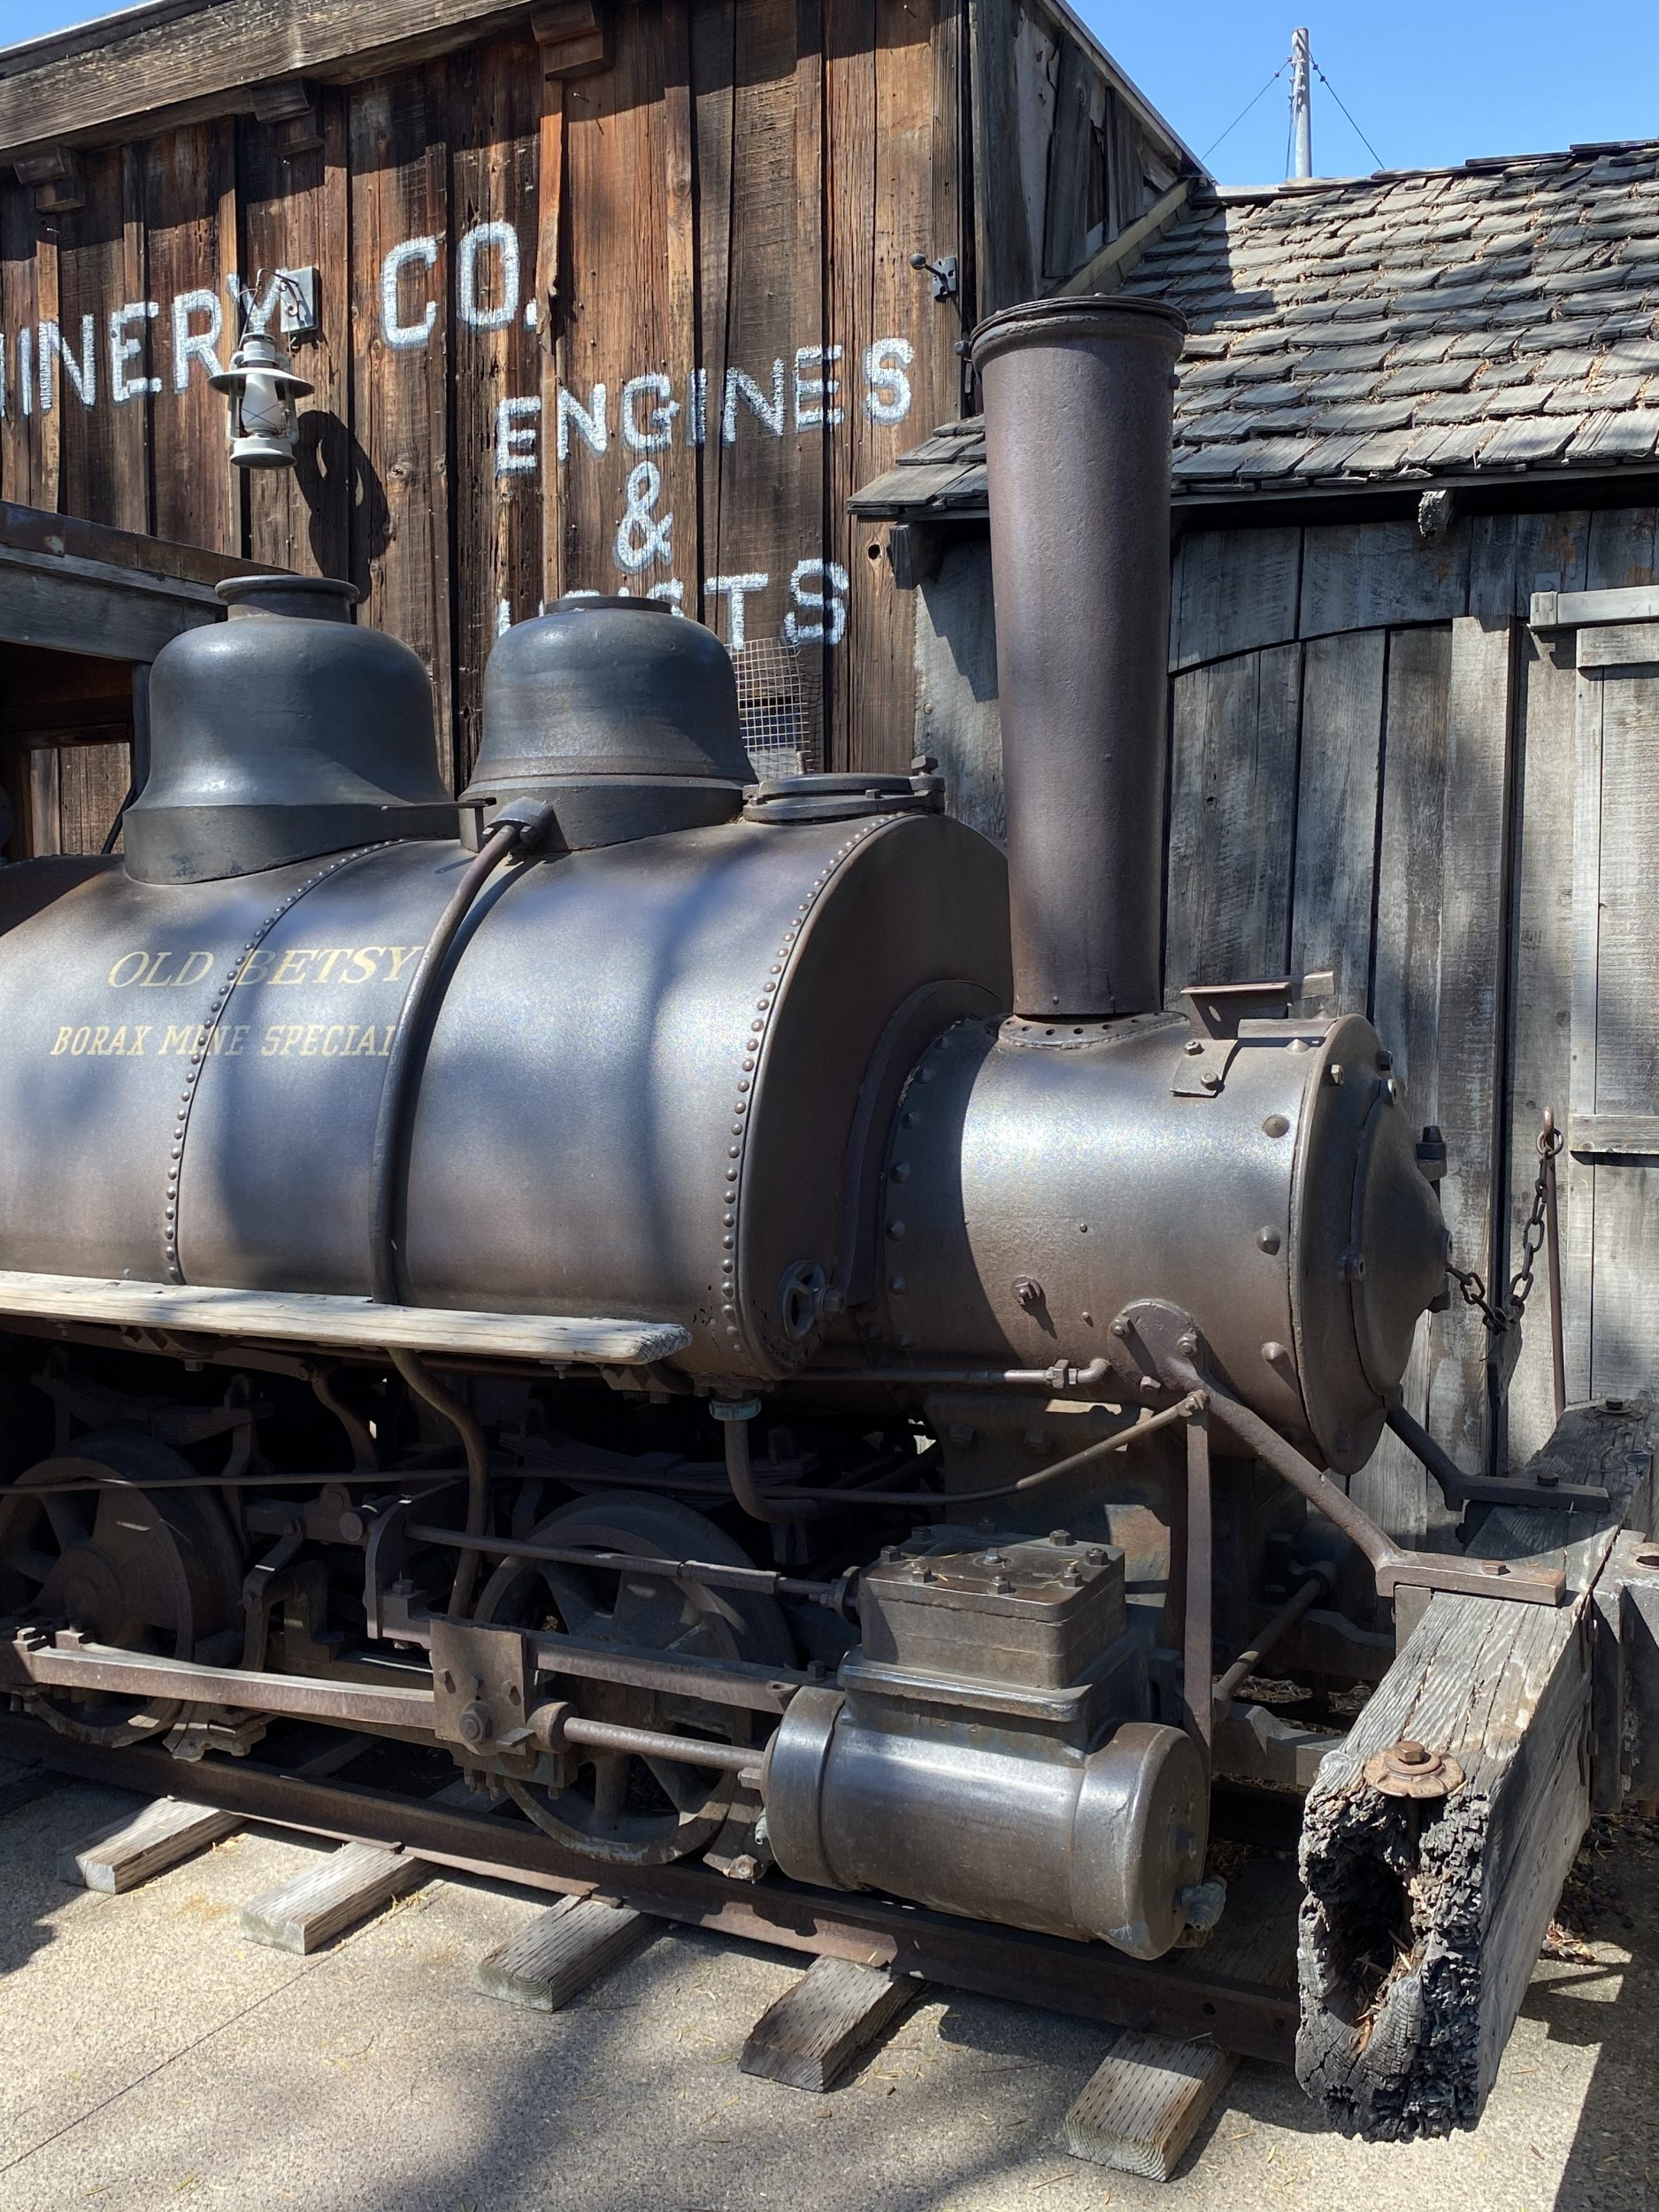 Train Engine rests amongst the historical buildings in Ghost Town at Knott's Berry Farm